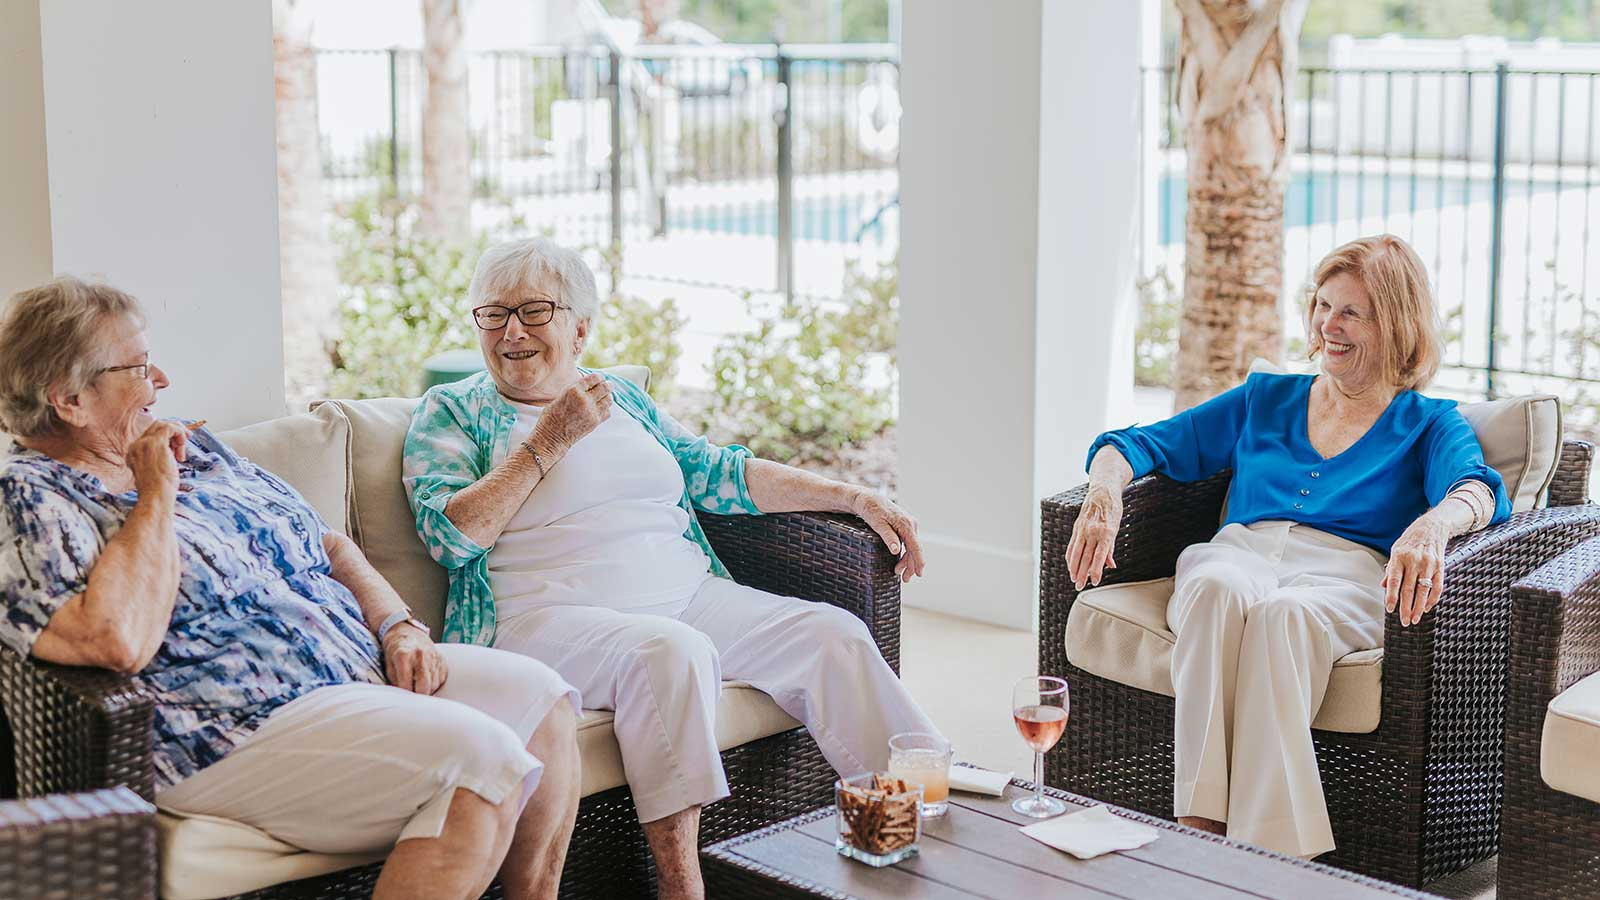 Staff member sitting with two senior women on independent living community patio with pool visible in background